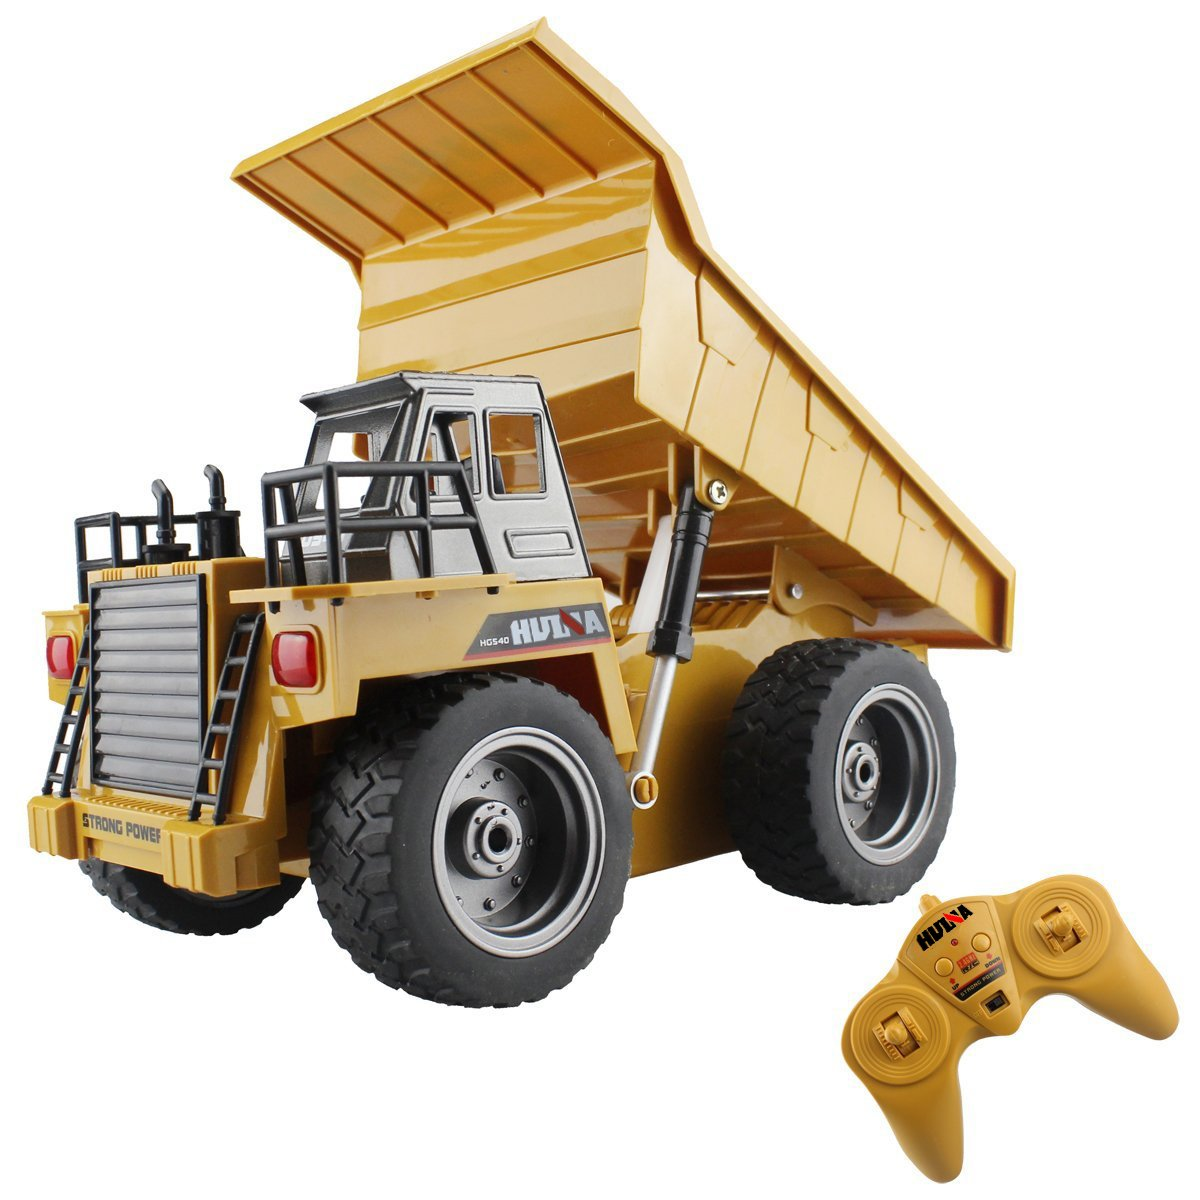 fisca RC Truck 6 Ch 2.4G Alloy Remote Control Dump Truck 4 Wheel Driver Mine Construction Vehicle Toy Machine Model with LED Light by fisca (Image #1)